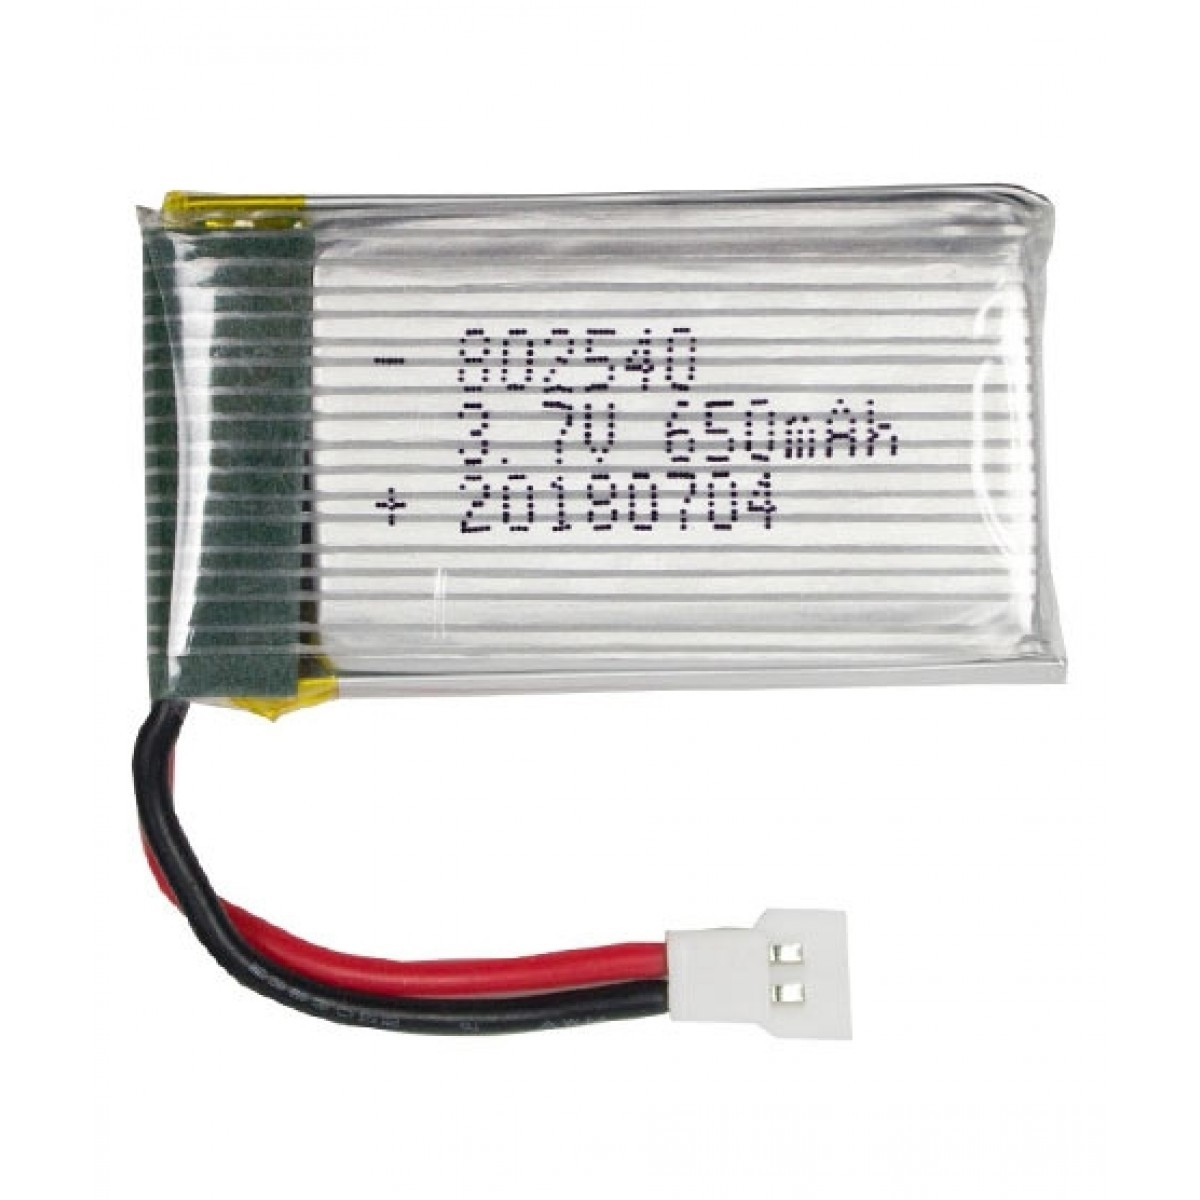 3.7V 650mAh 25C lipo battery for drones toys and DIY projects